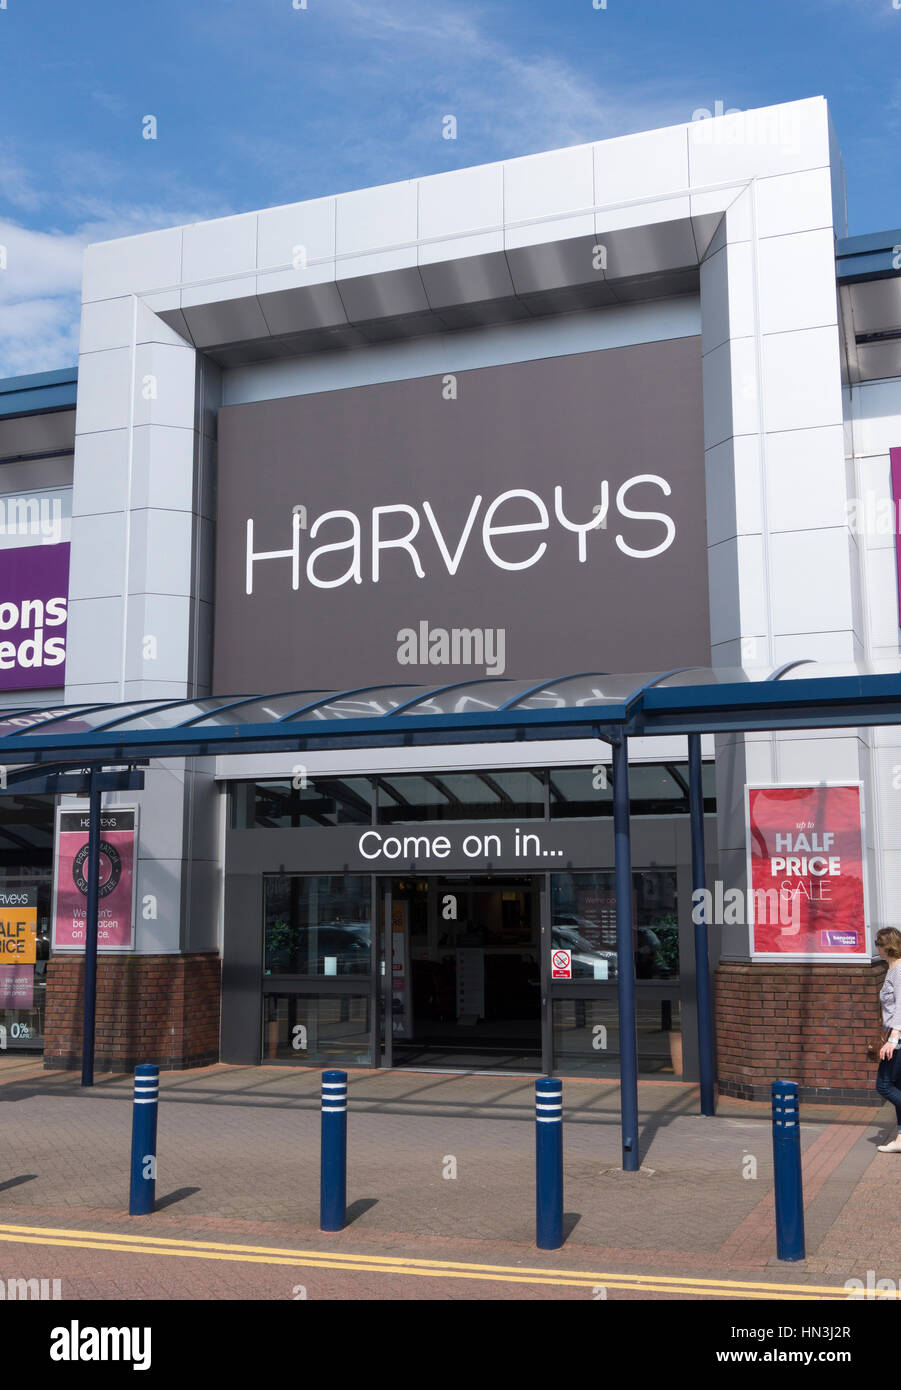 Harveys Furniture Store in Horwich, Bolton. Immagini Stock